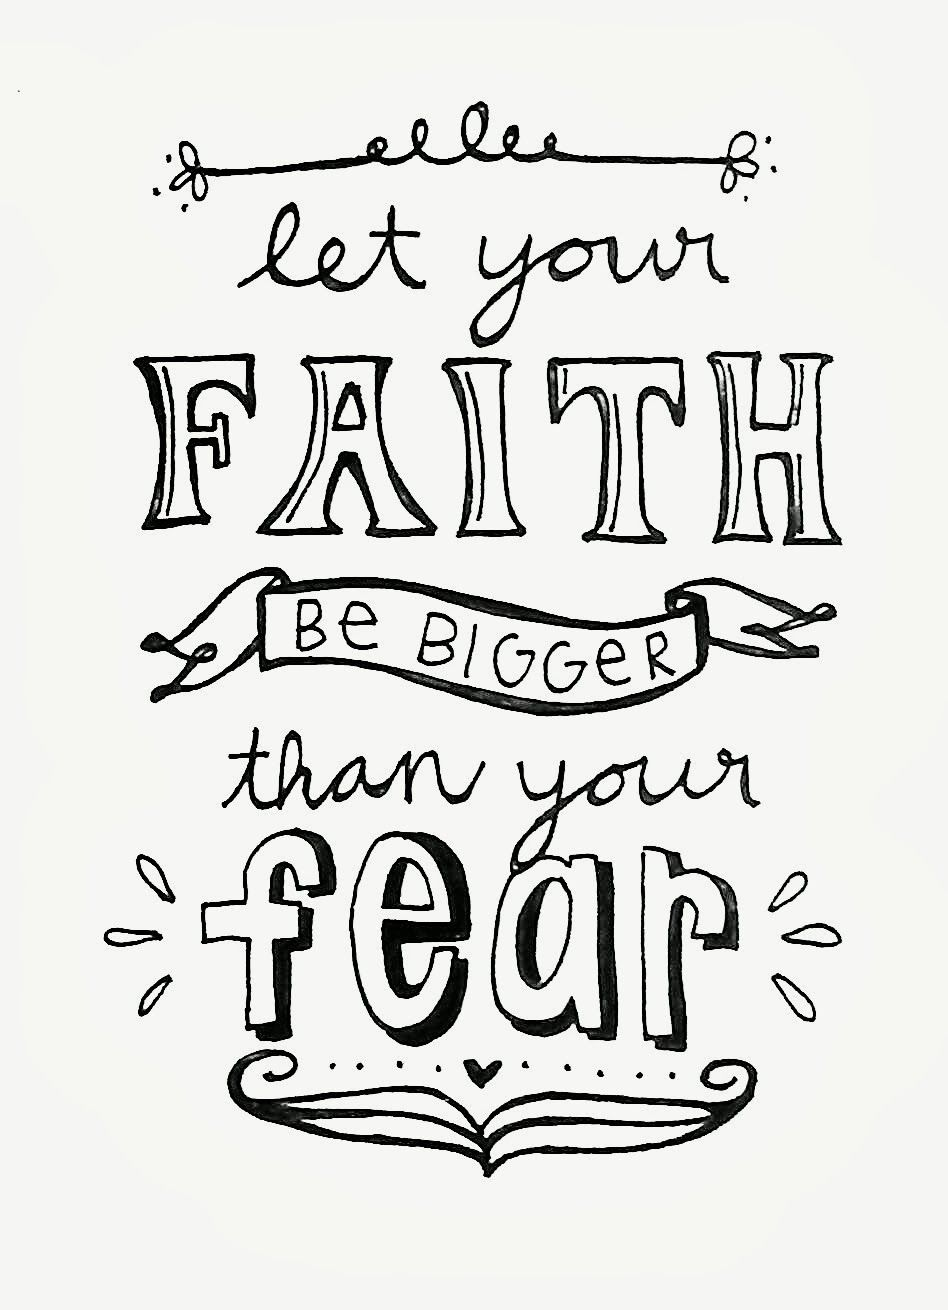 Best Fresh Colouring Pages Faith Coloring Pages At Minima 4602 Bible Verse Coloring Page Bible Verse Coloring Bible Quotes